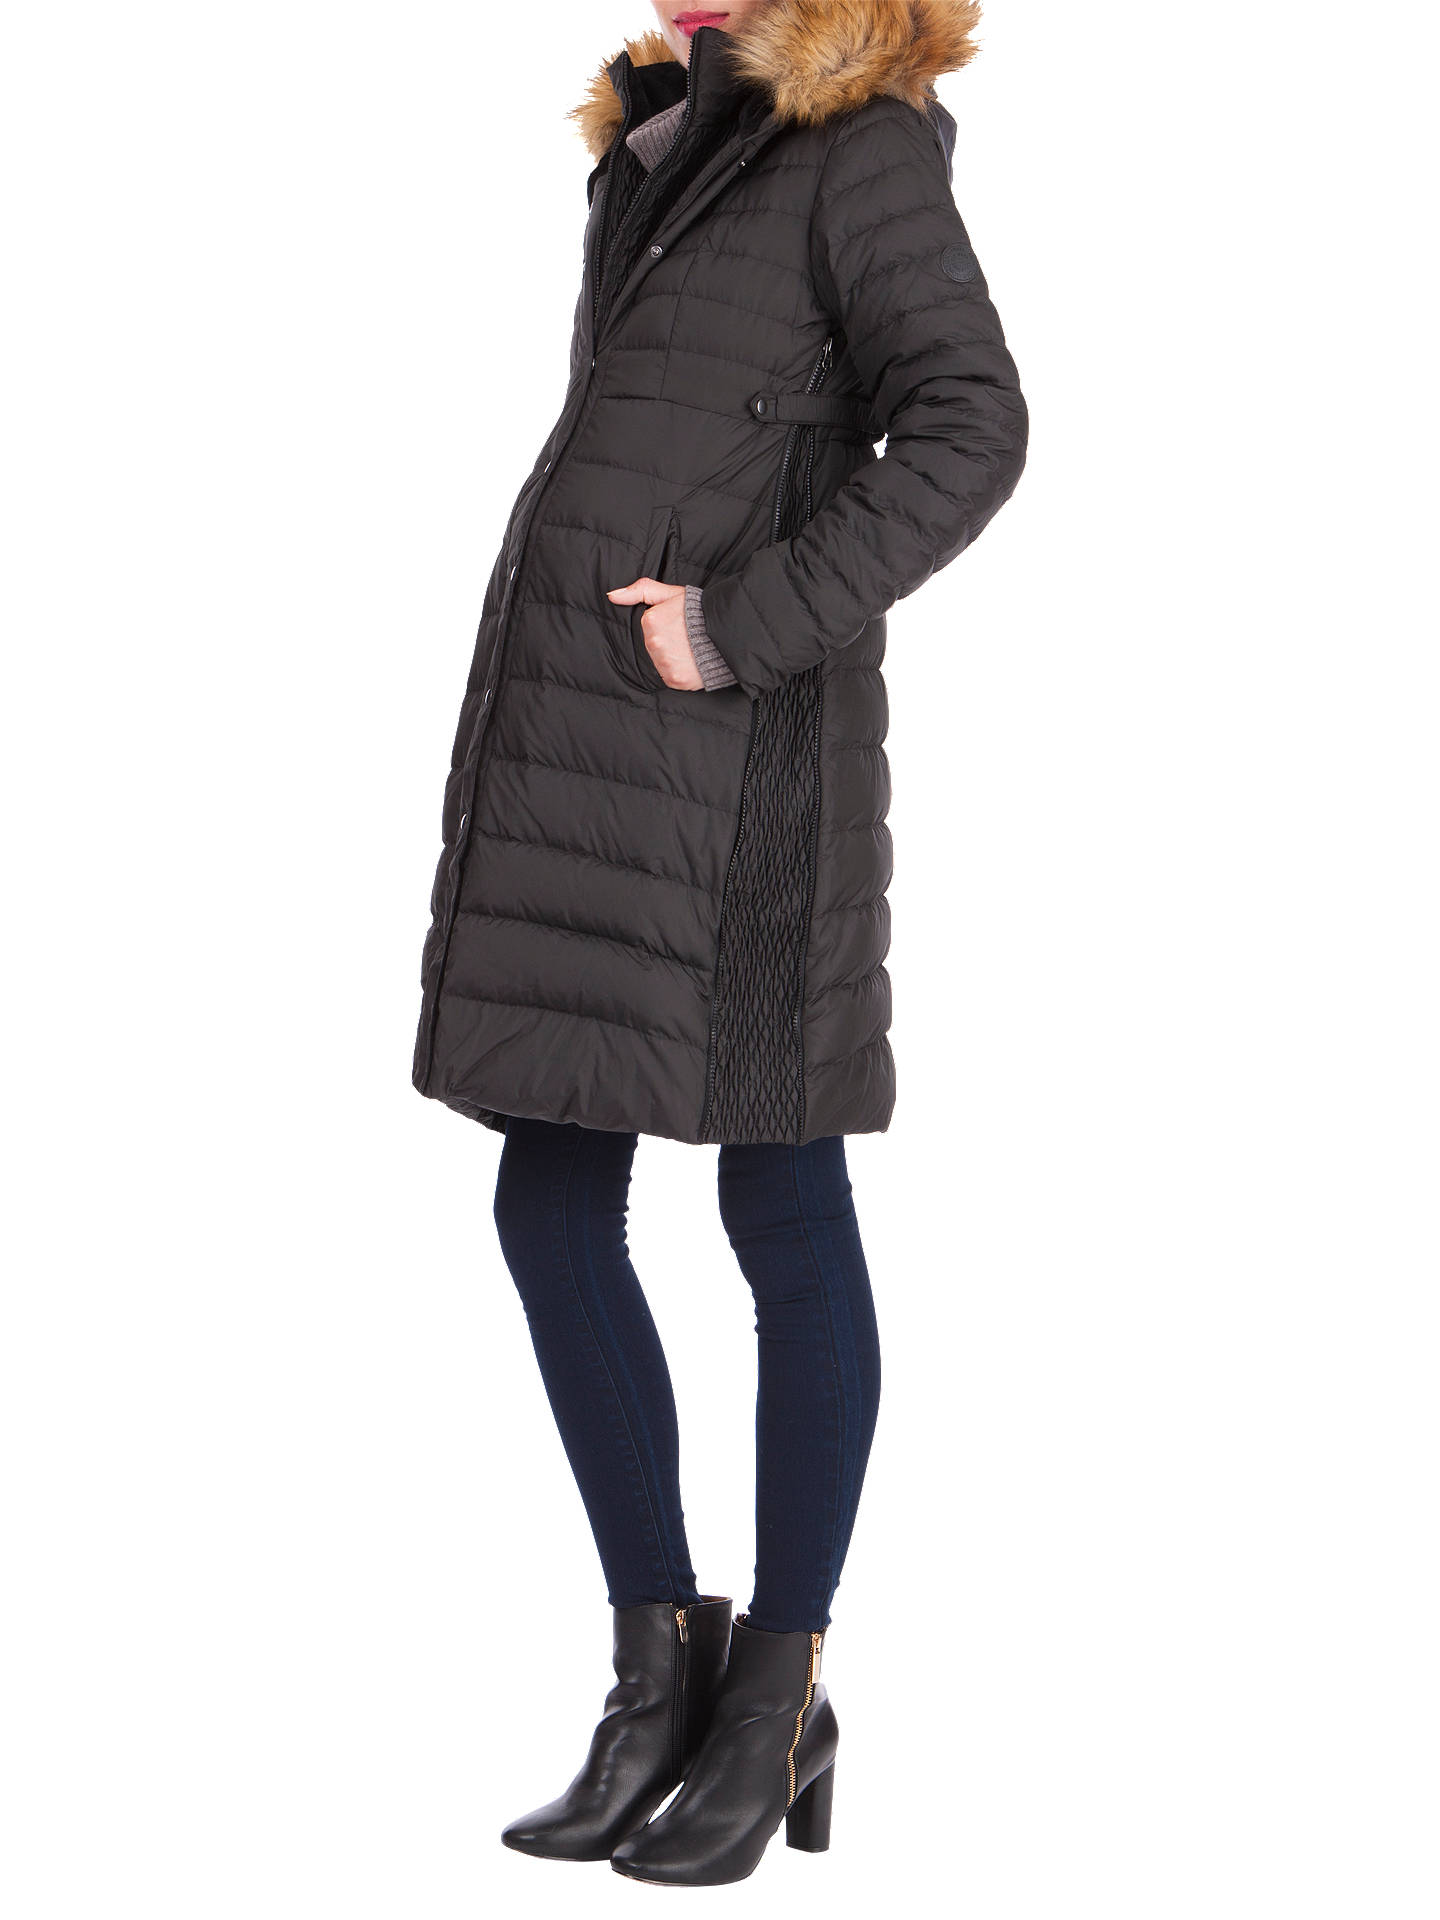 BuySéraphine Danya Winter Down Maternity Parka Coat, Black, 8 Online at johnlewis.com